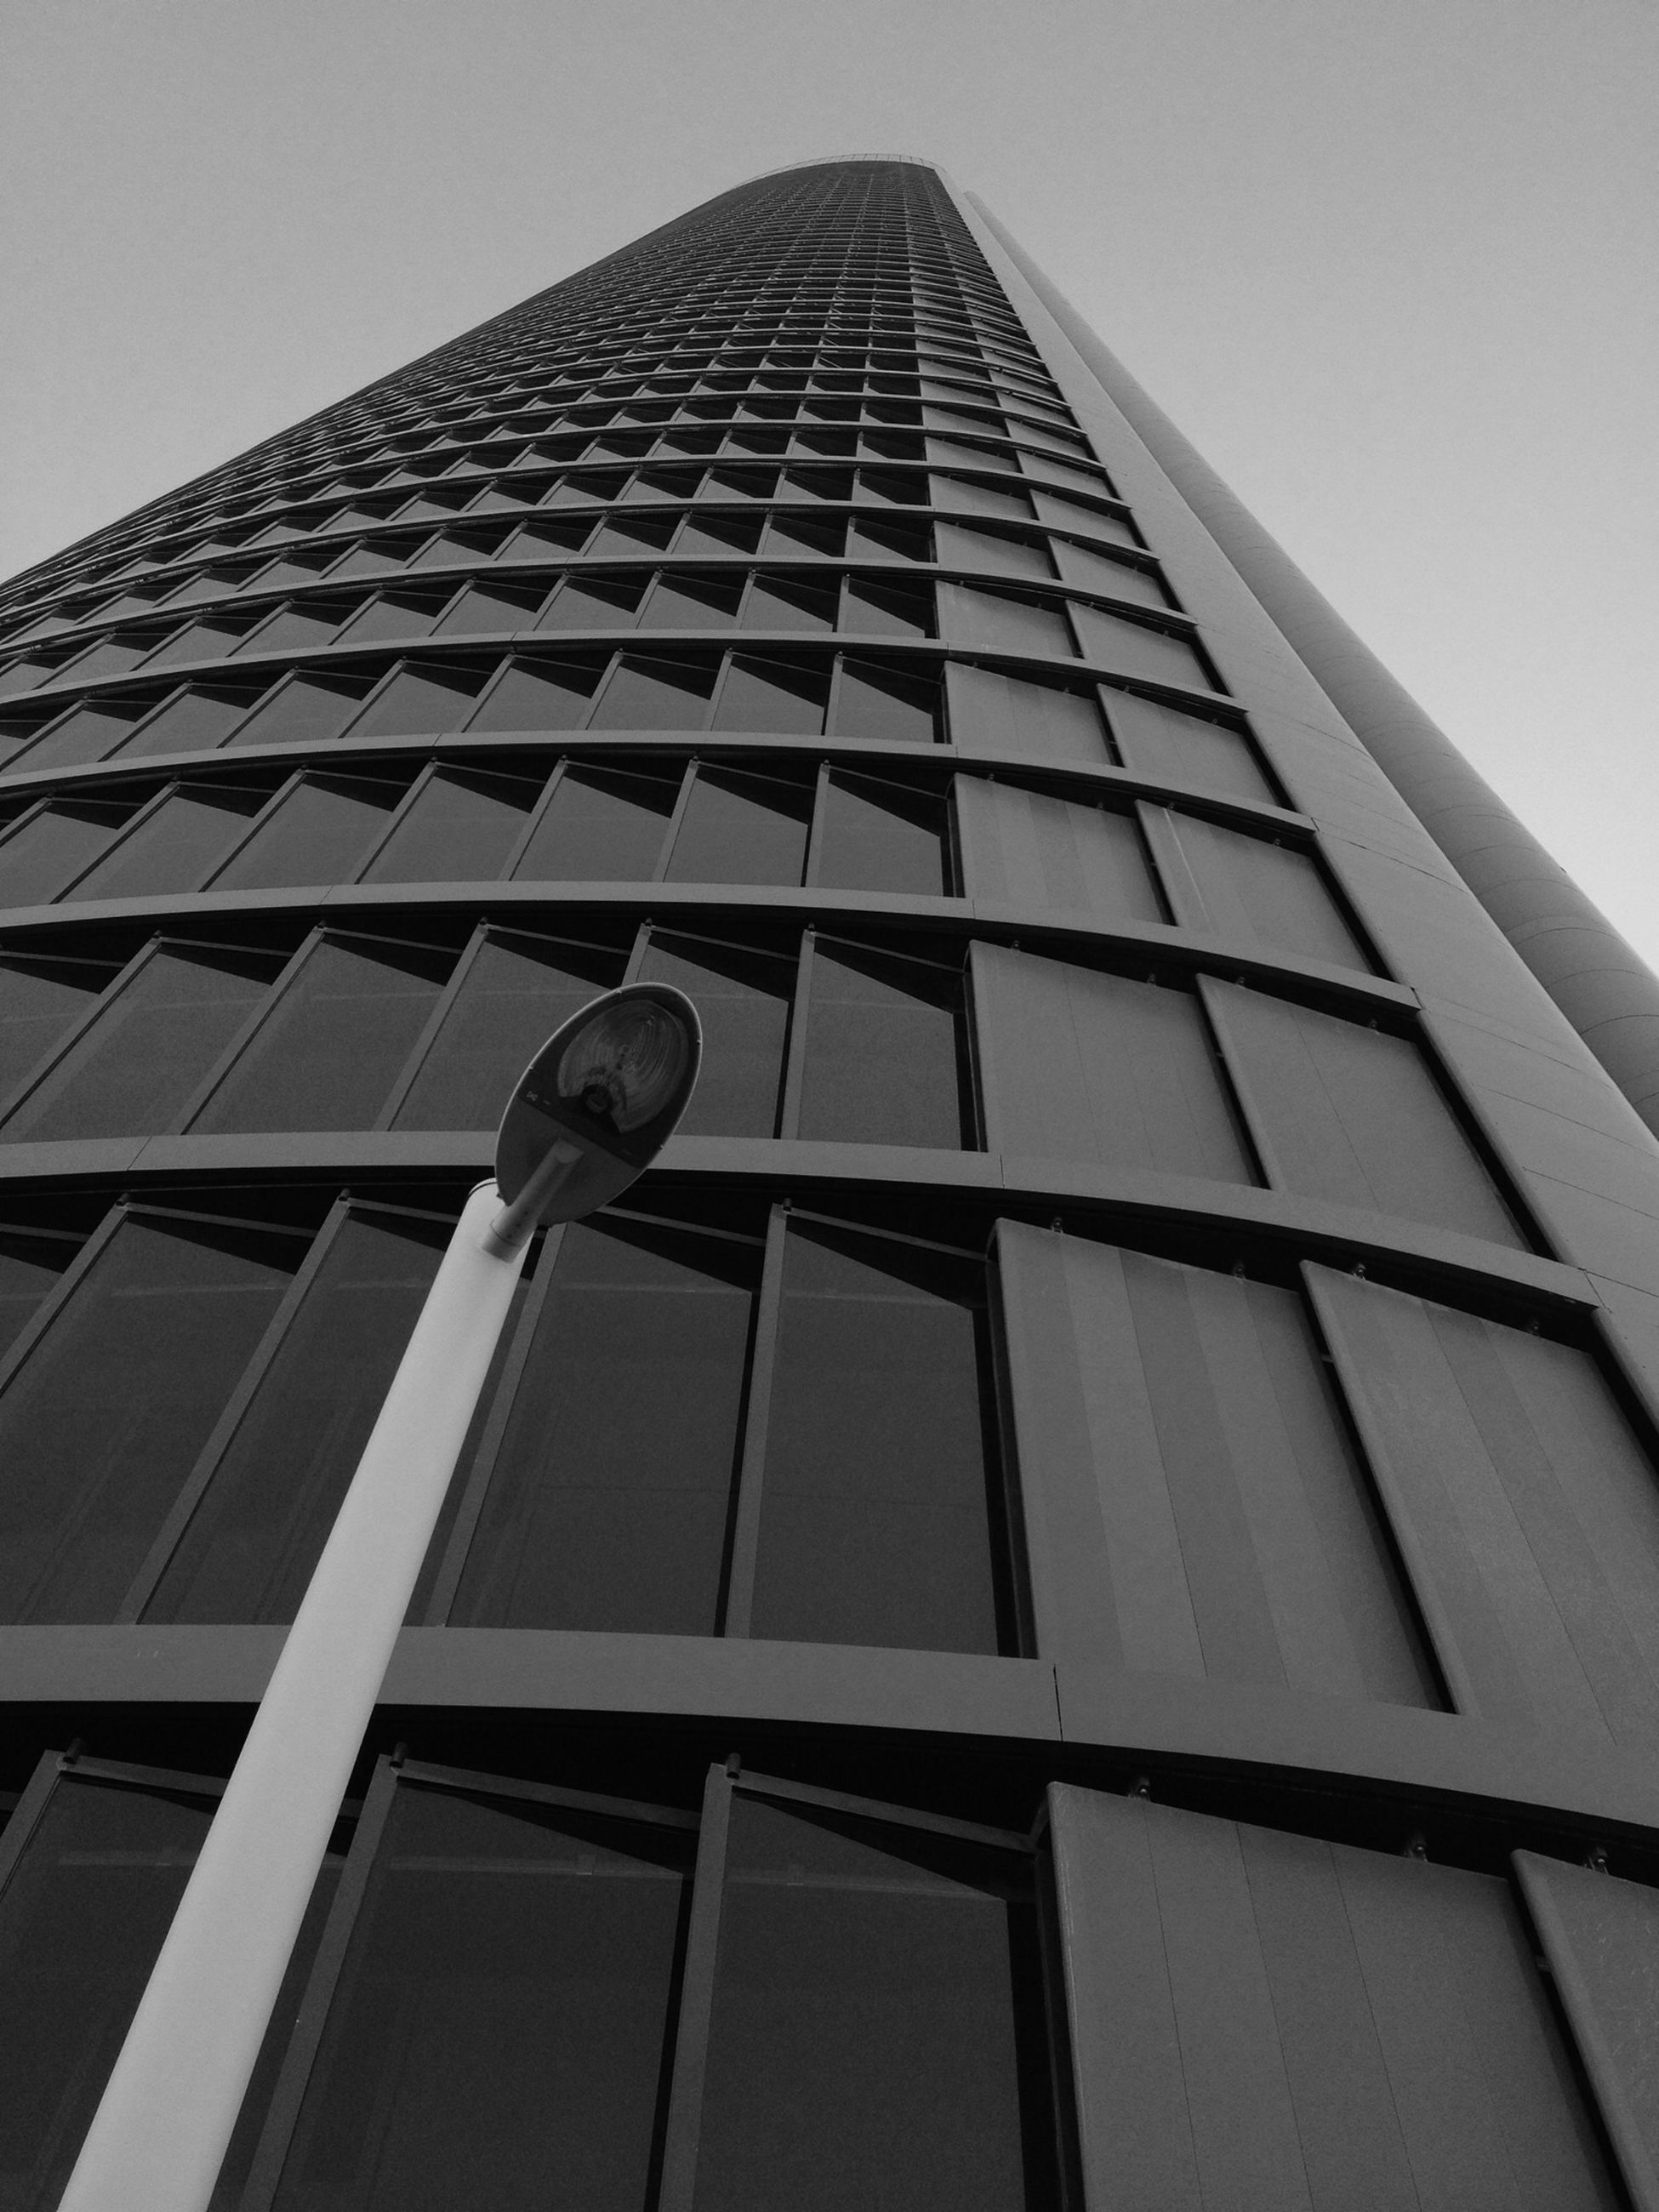 low angle view, architecture, building exterior, built structure, tall - high, tower, modern, office building, skyscraper, city, building, sky, clear sky, glass - material, window, tall, day, outdoors, no people, reflection